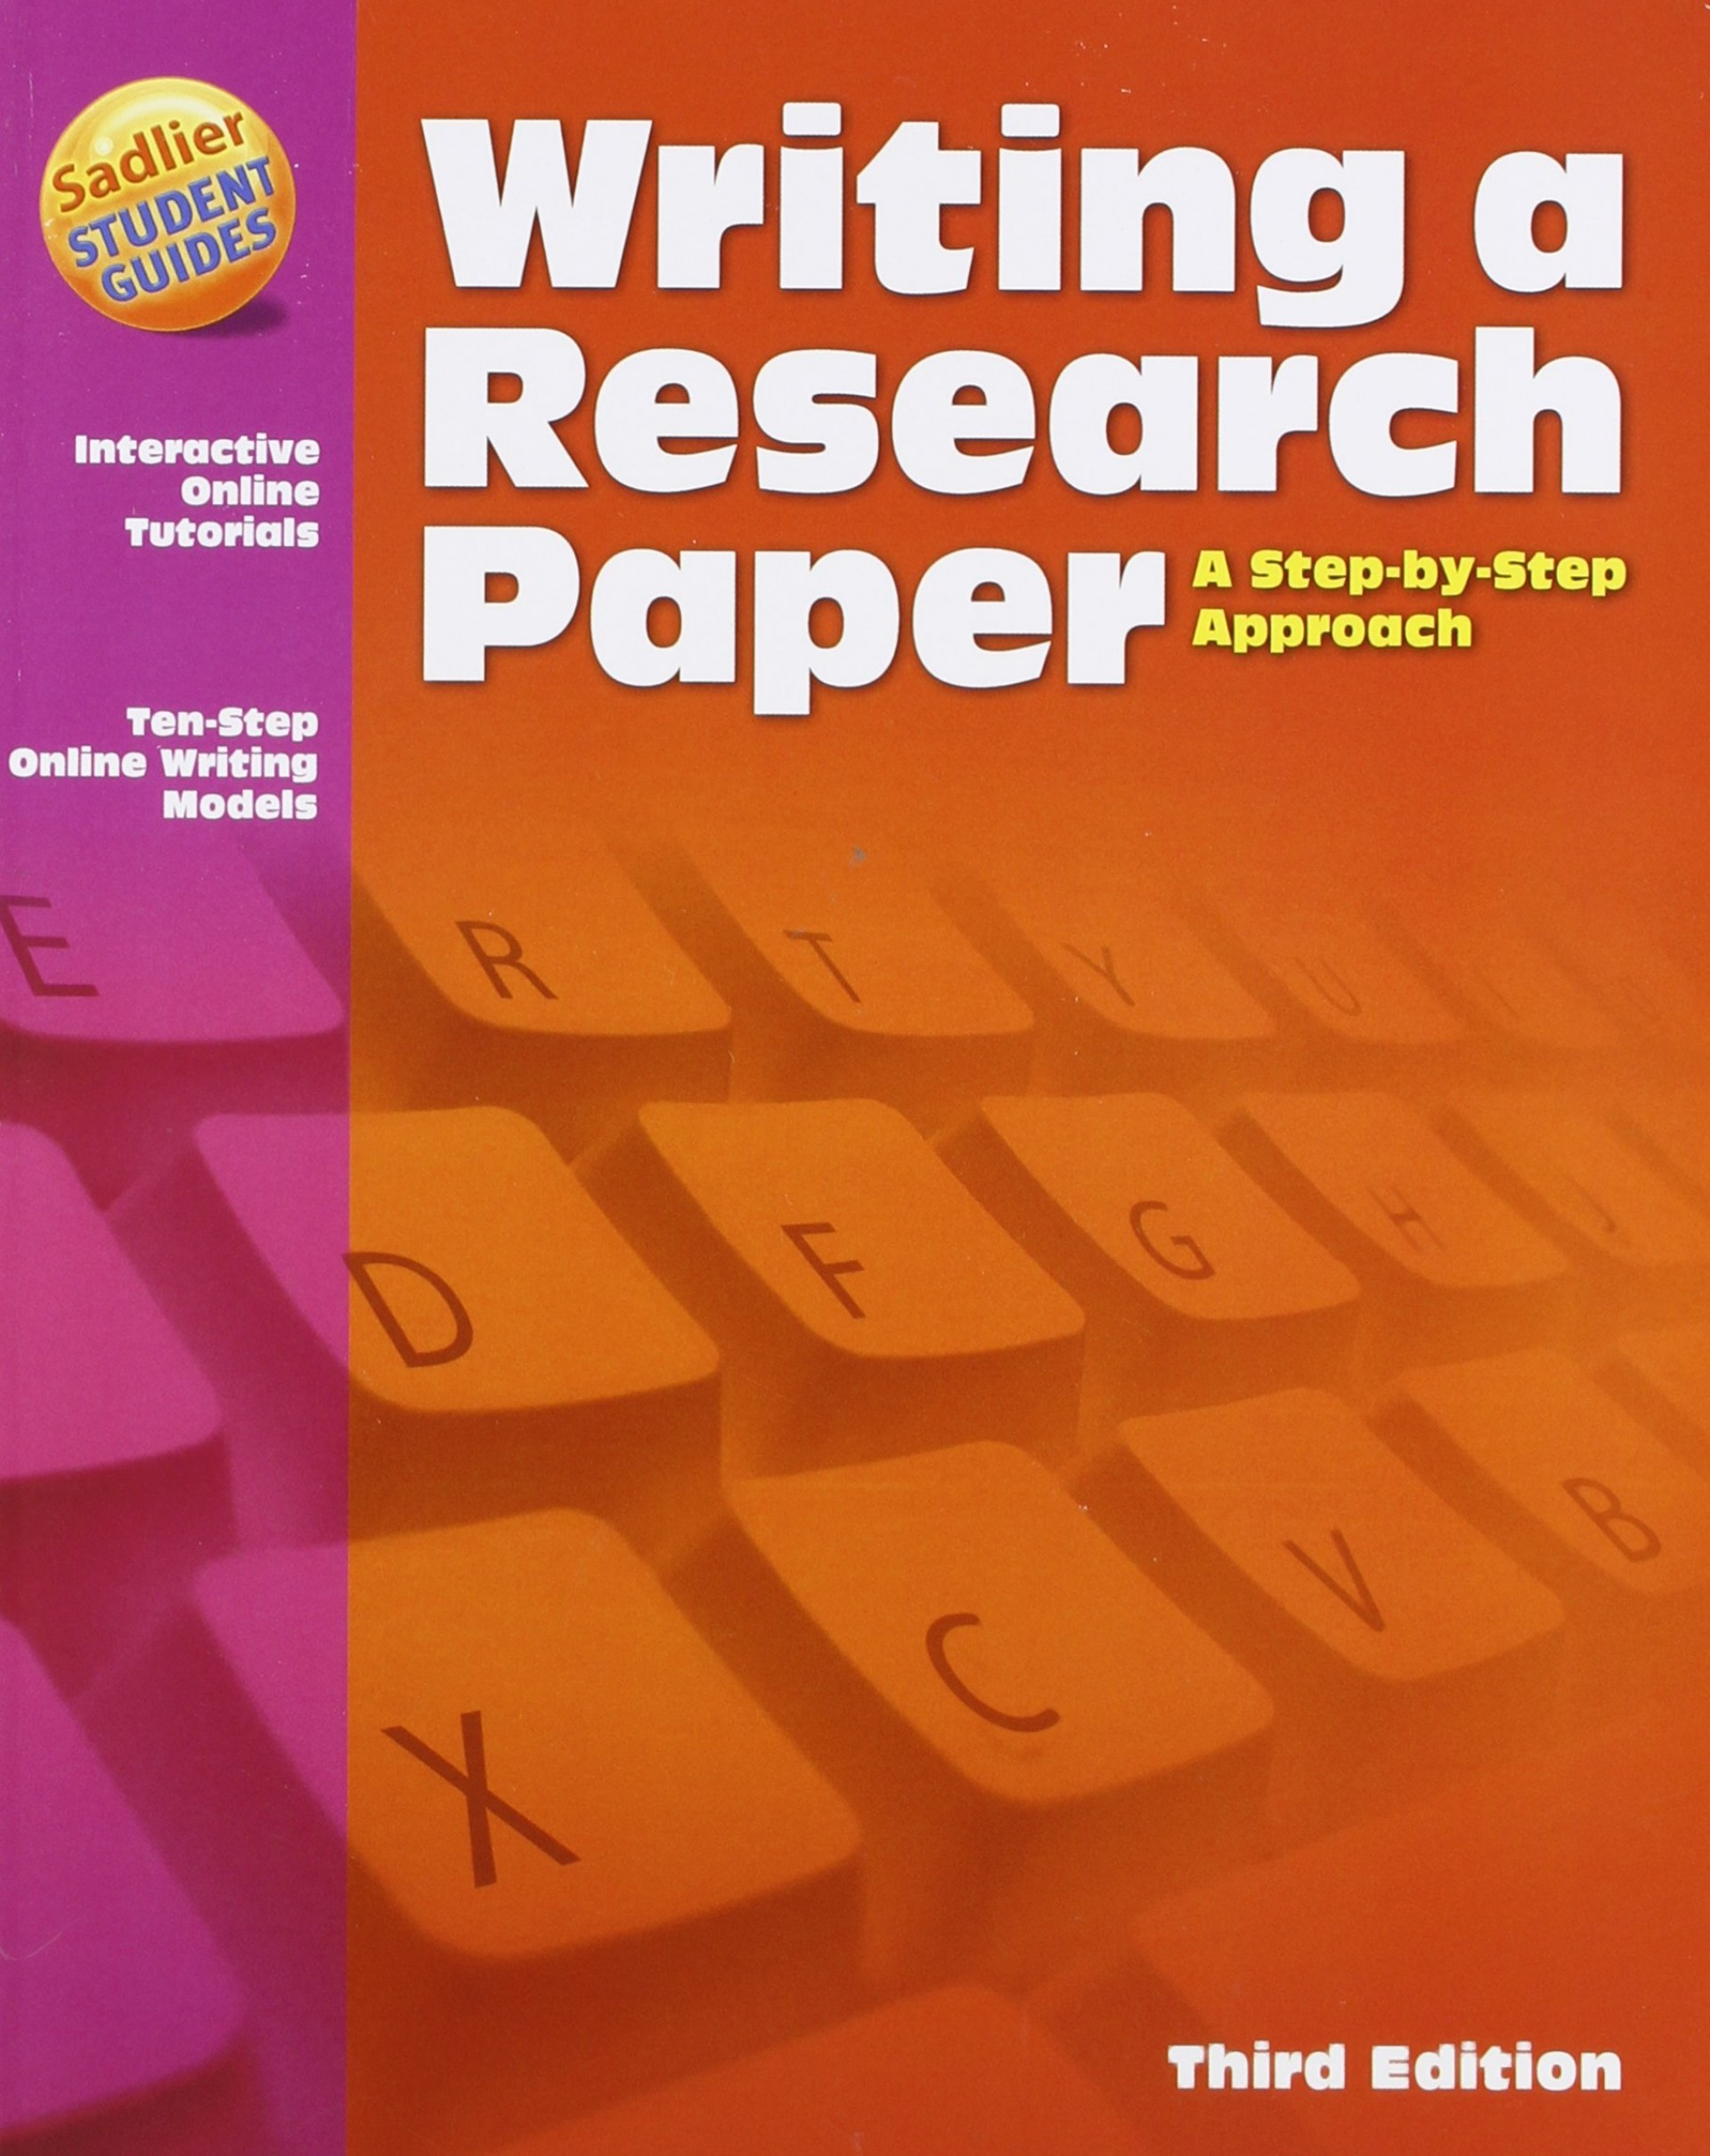 028 81uqfpthpml Research Paper Writing Fascinating Of Great Pdf Harvard Style Sample 1920